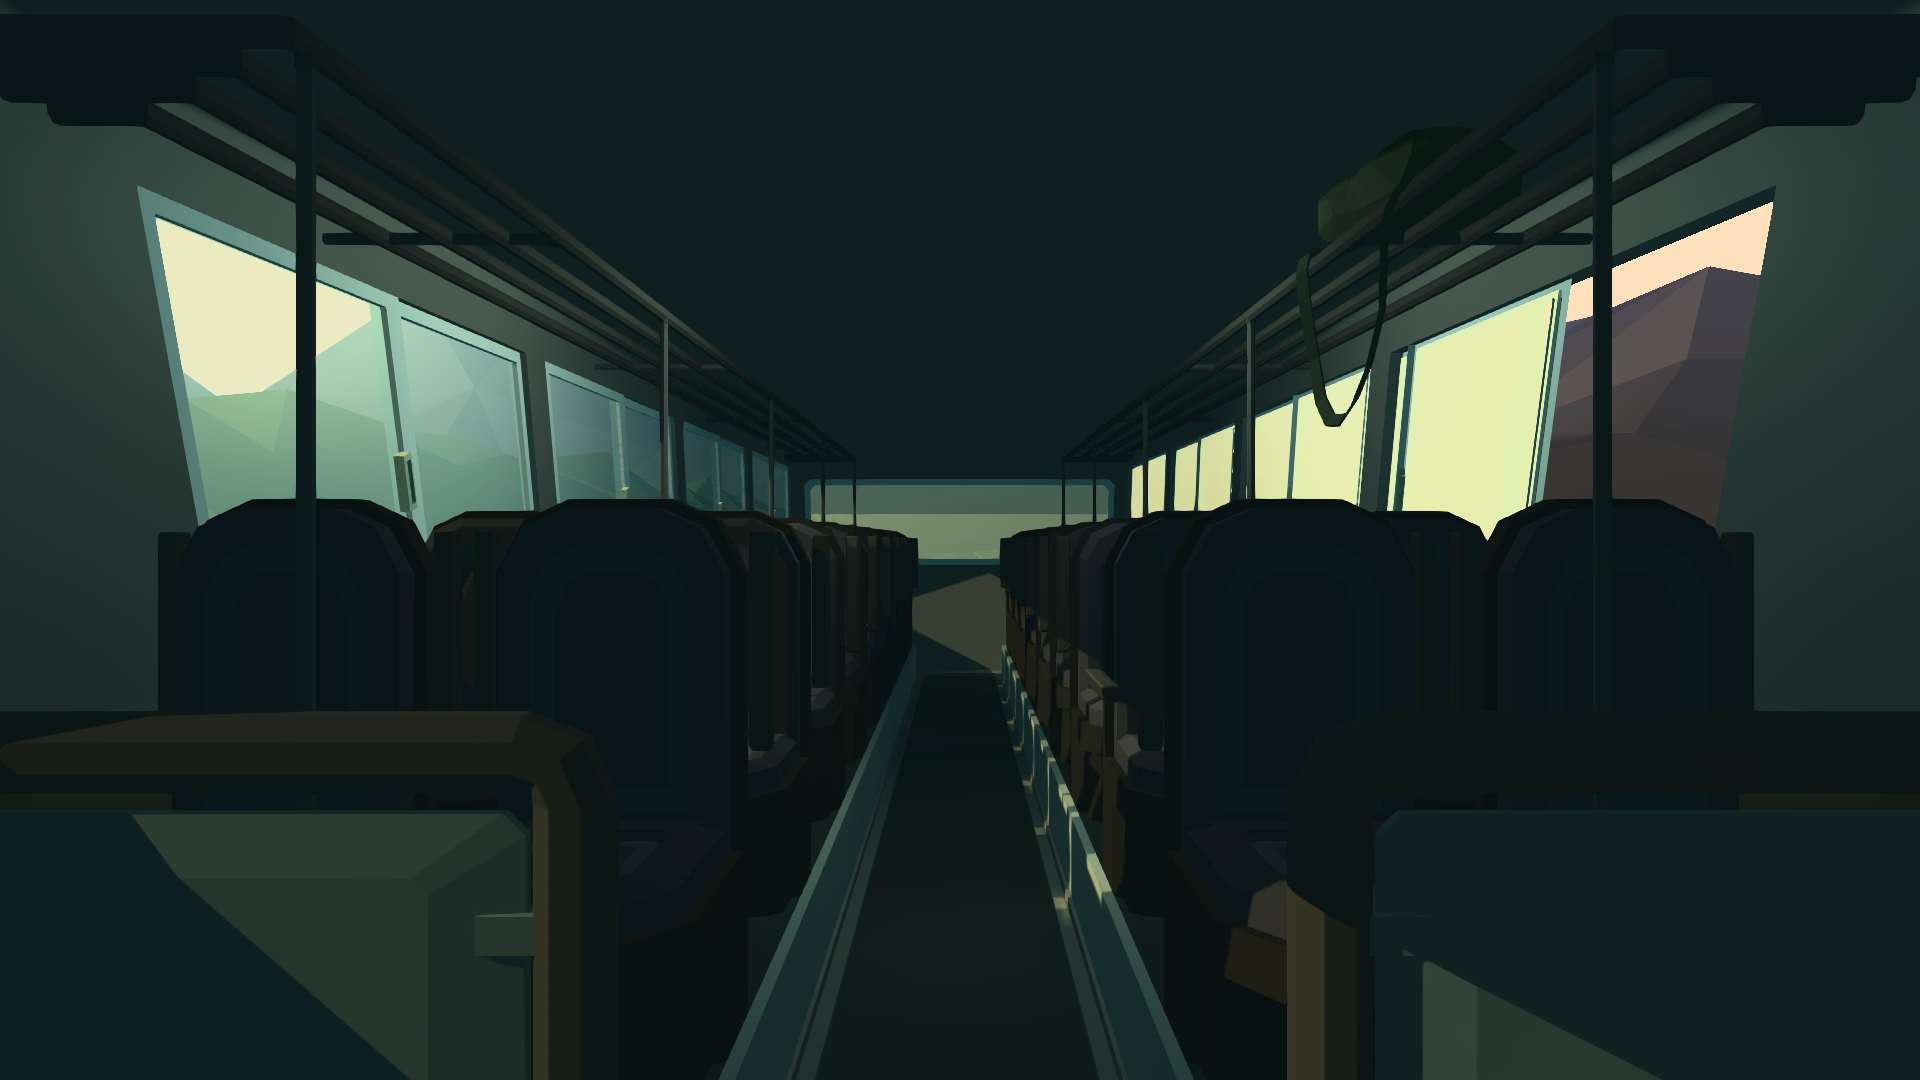 05_Bus.png